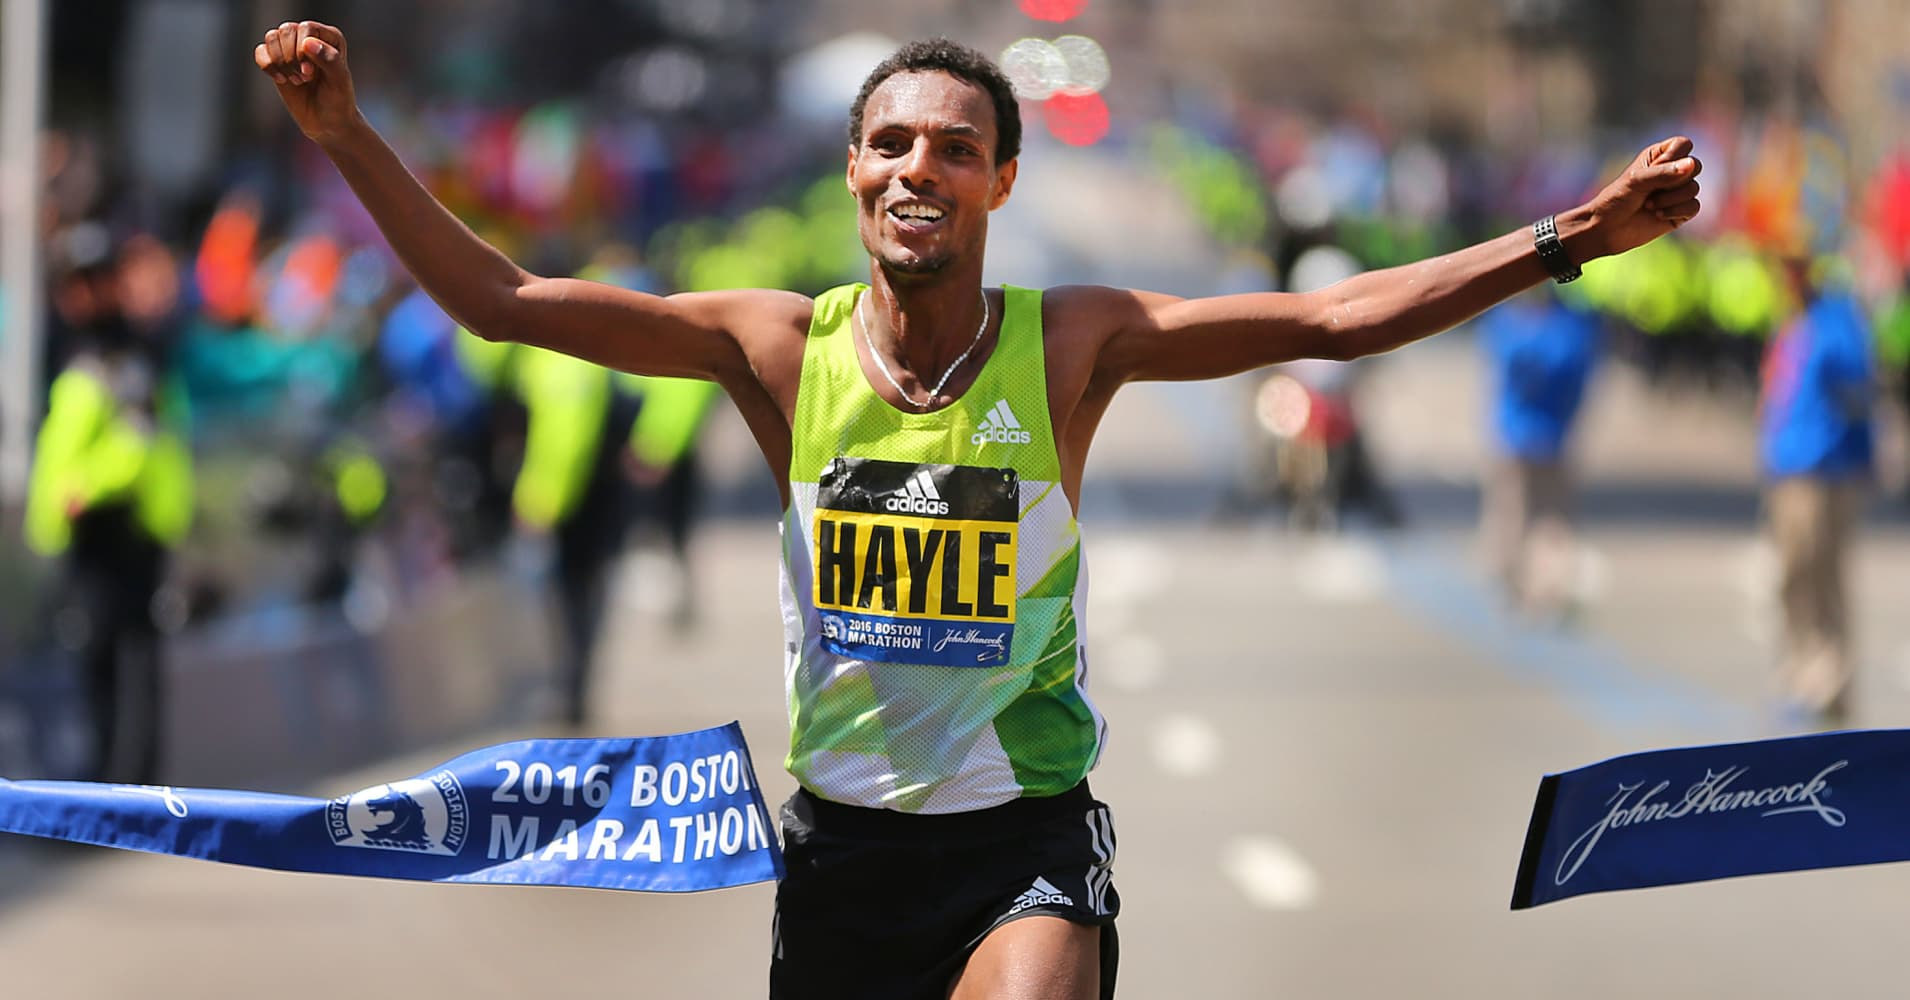 Lemi Berhanu Hayle of Ethiopia crosses the finish line to win the mens race in the 120th Boston Marathon on Monday, April 18, 2016.